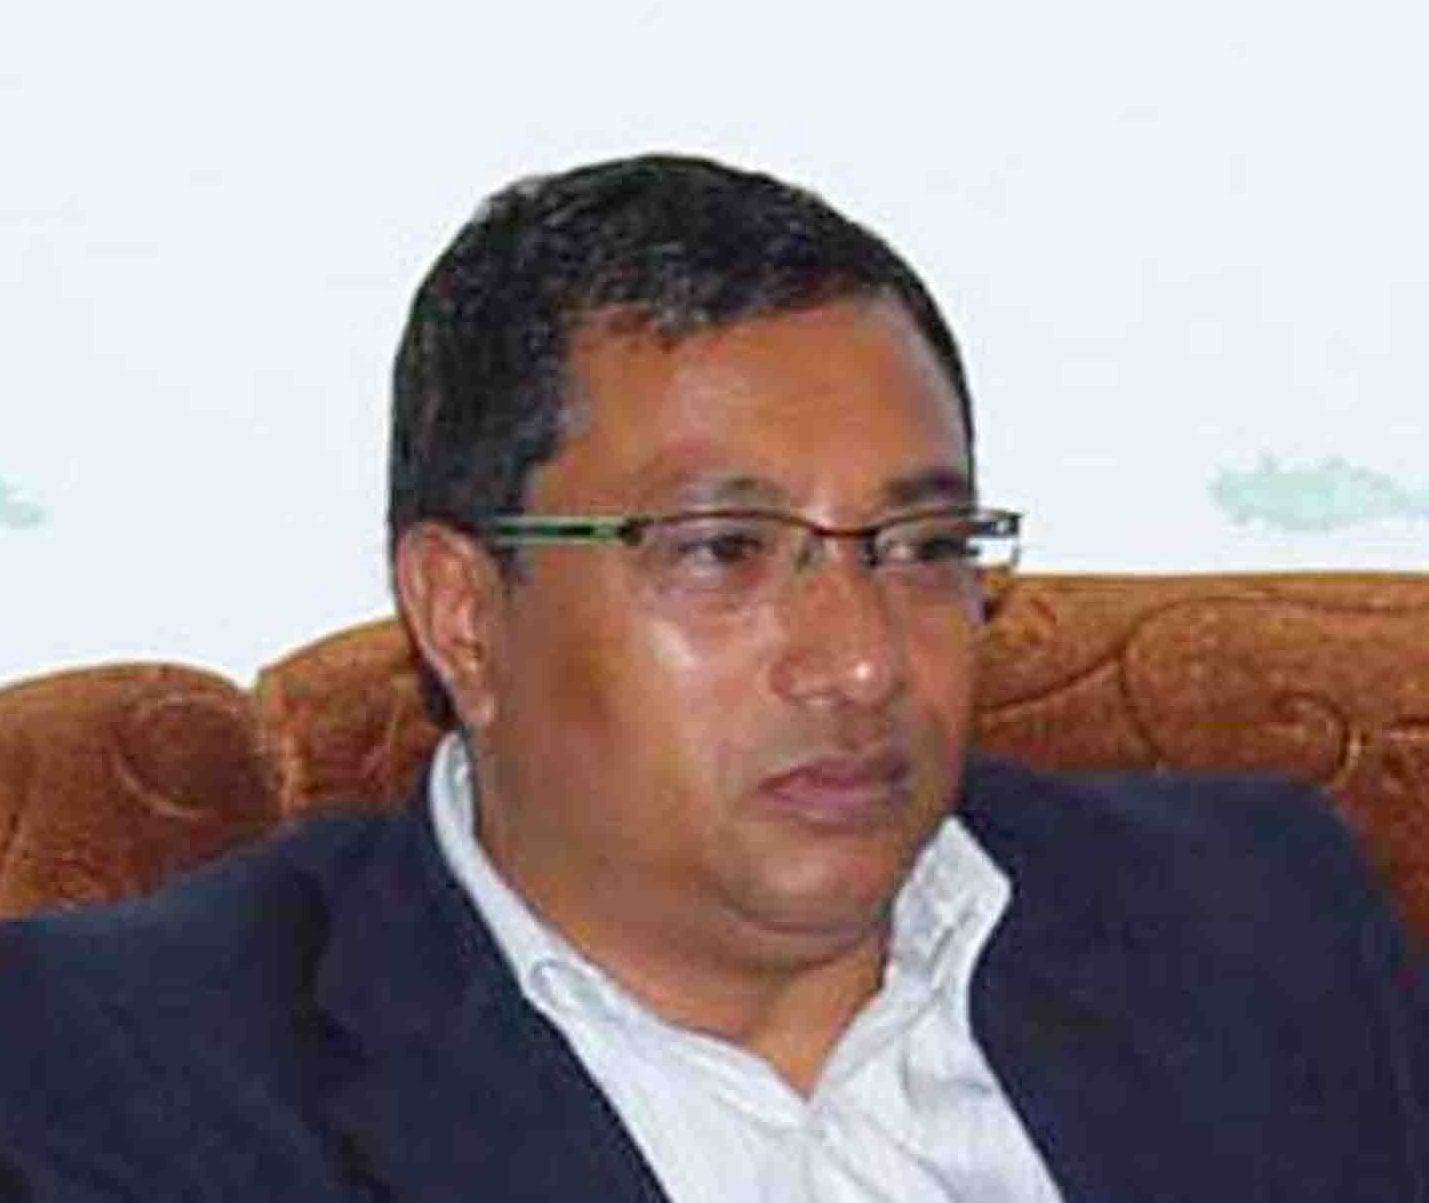 Meghalaya Health Minister AL Hek contradicts HNLC claims on BJP & NPP